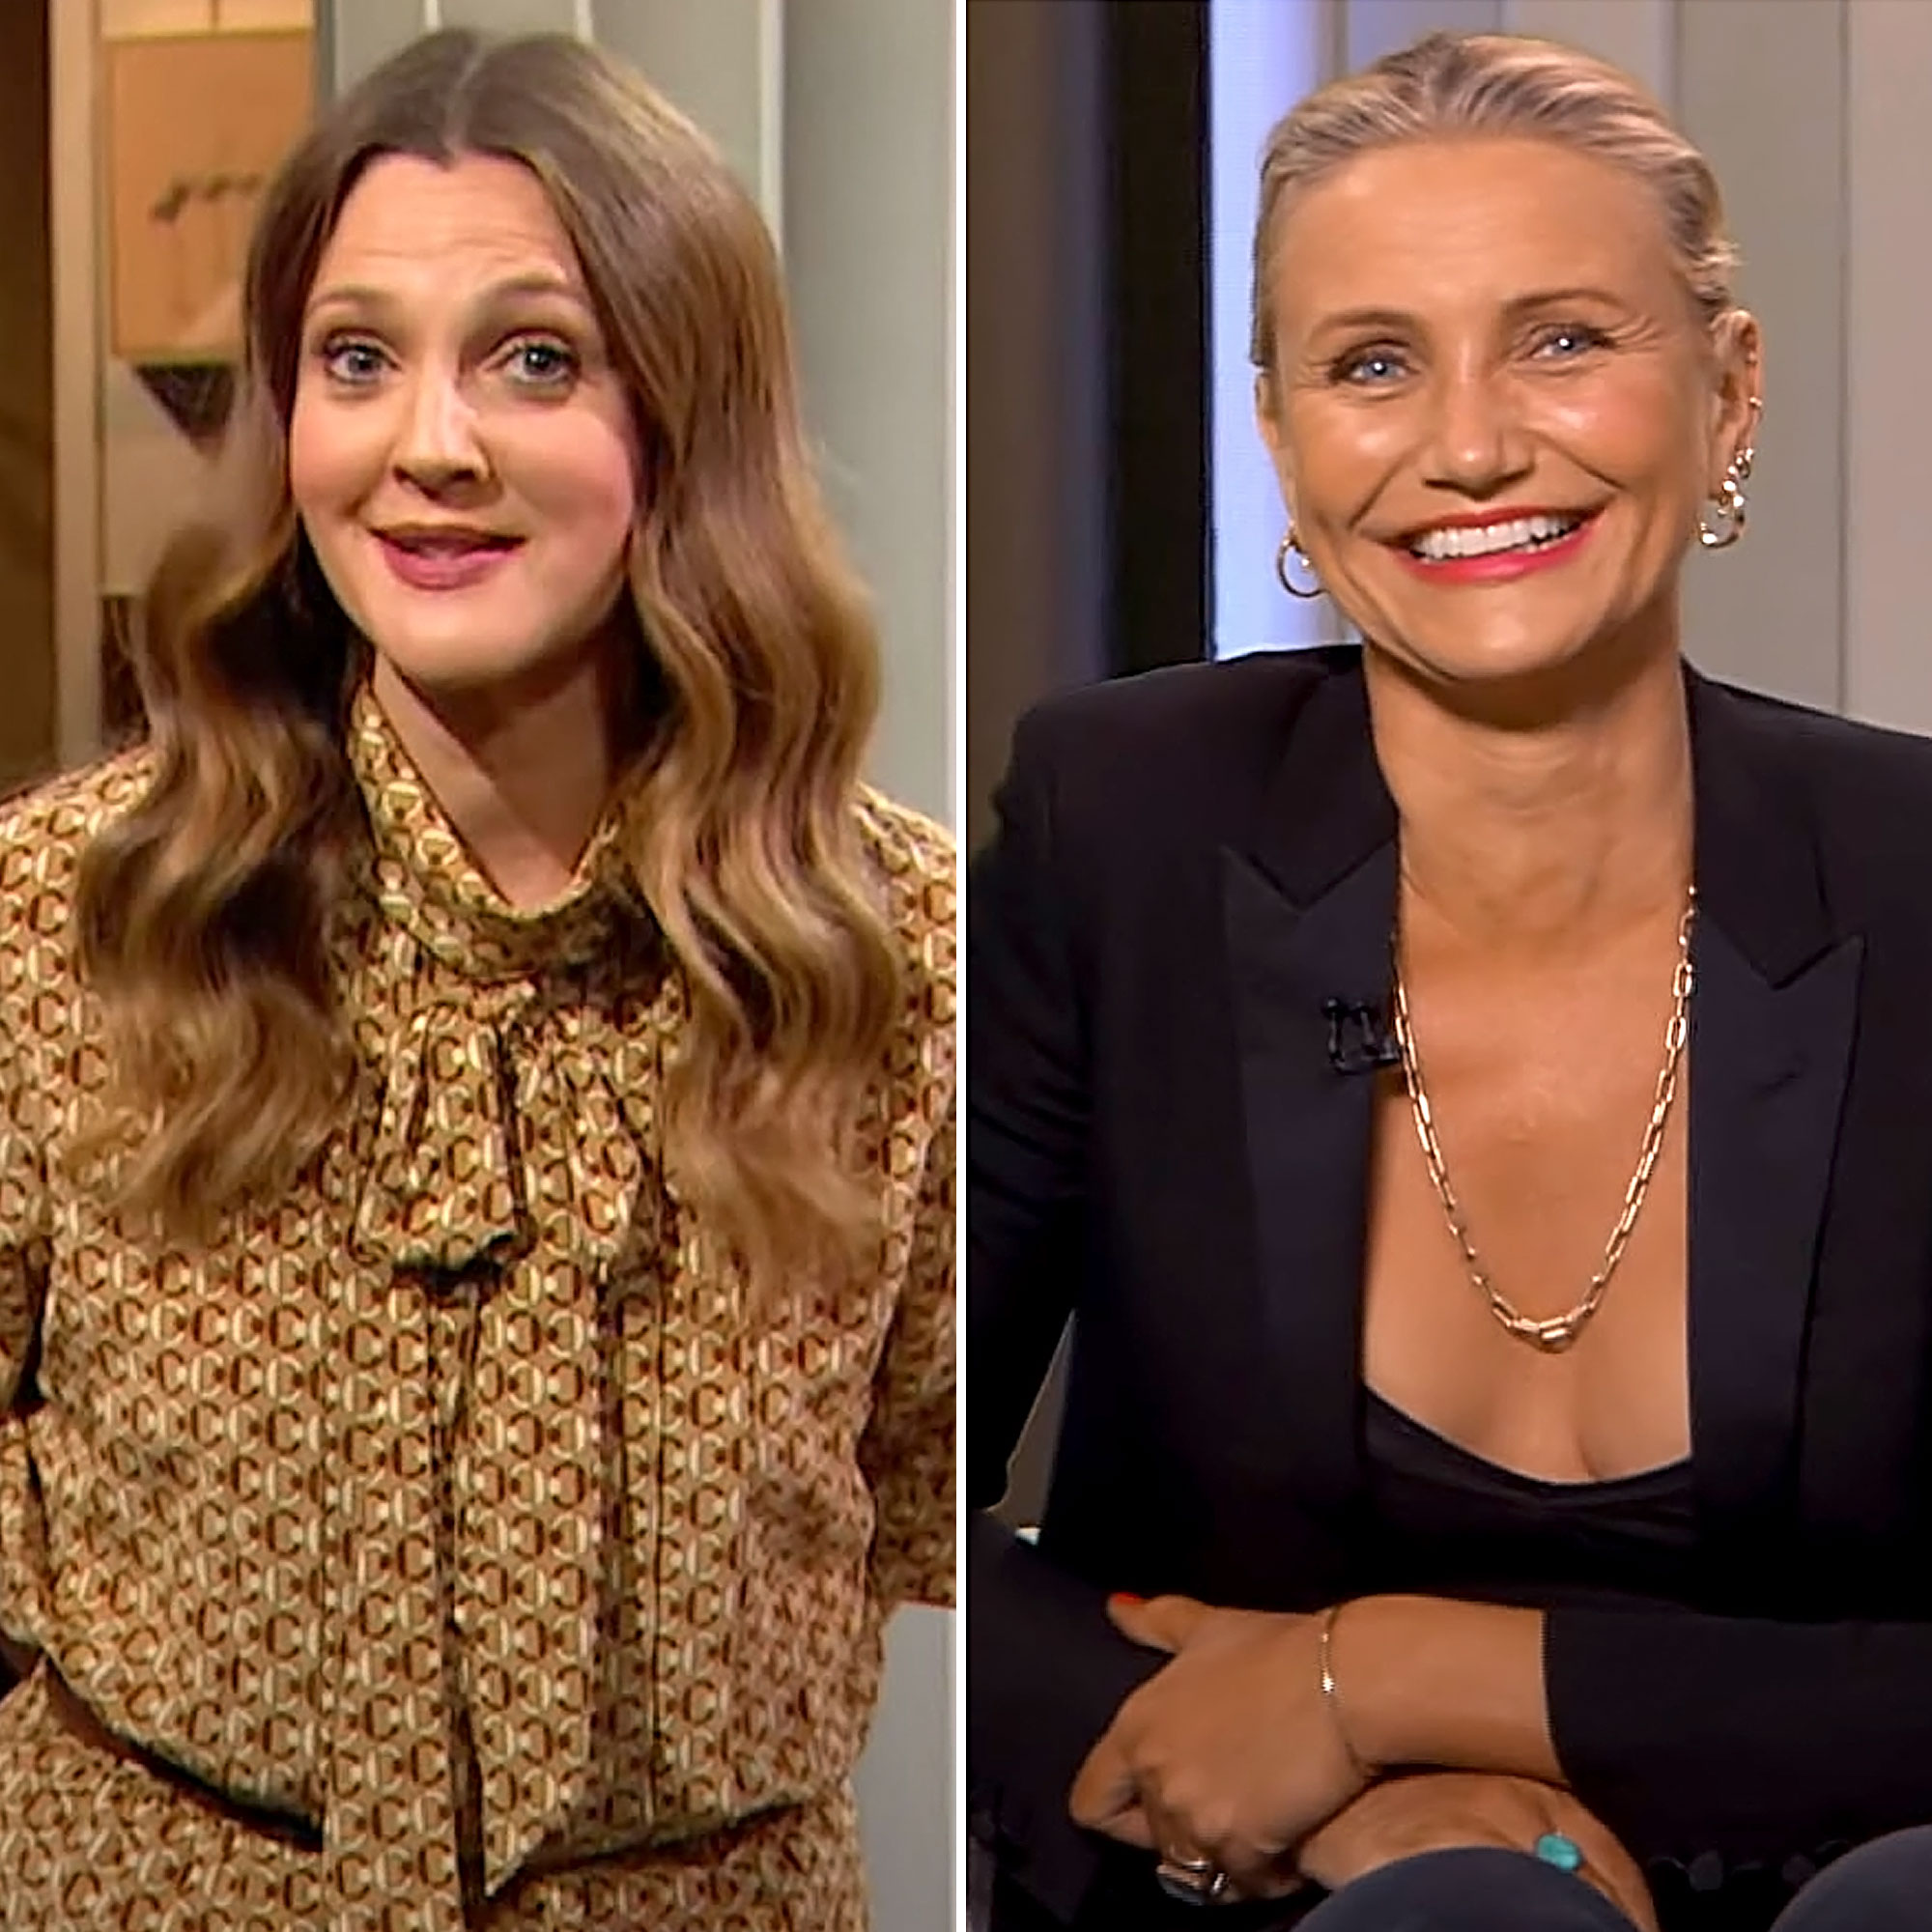 Drew Barrymore Gushes About Snuggling Cameron Diaz Daughter Raddix